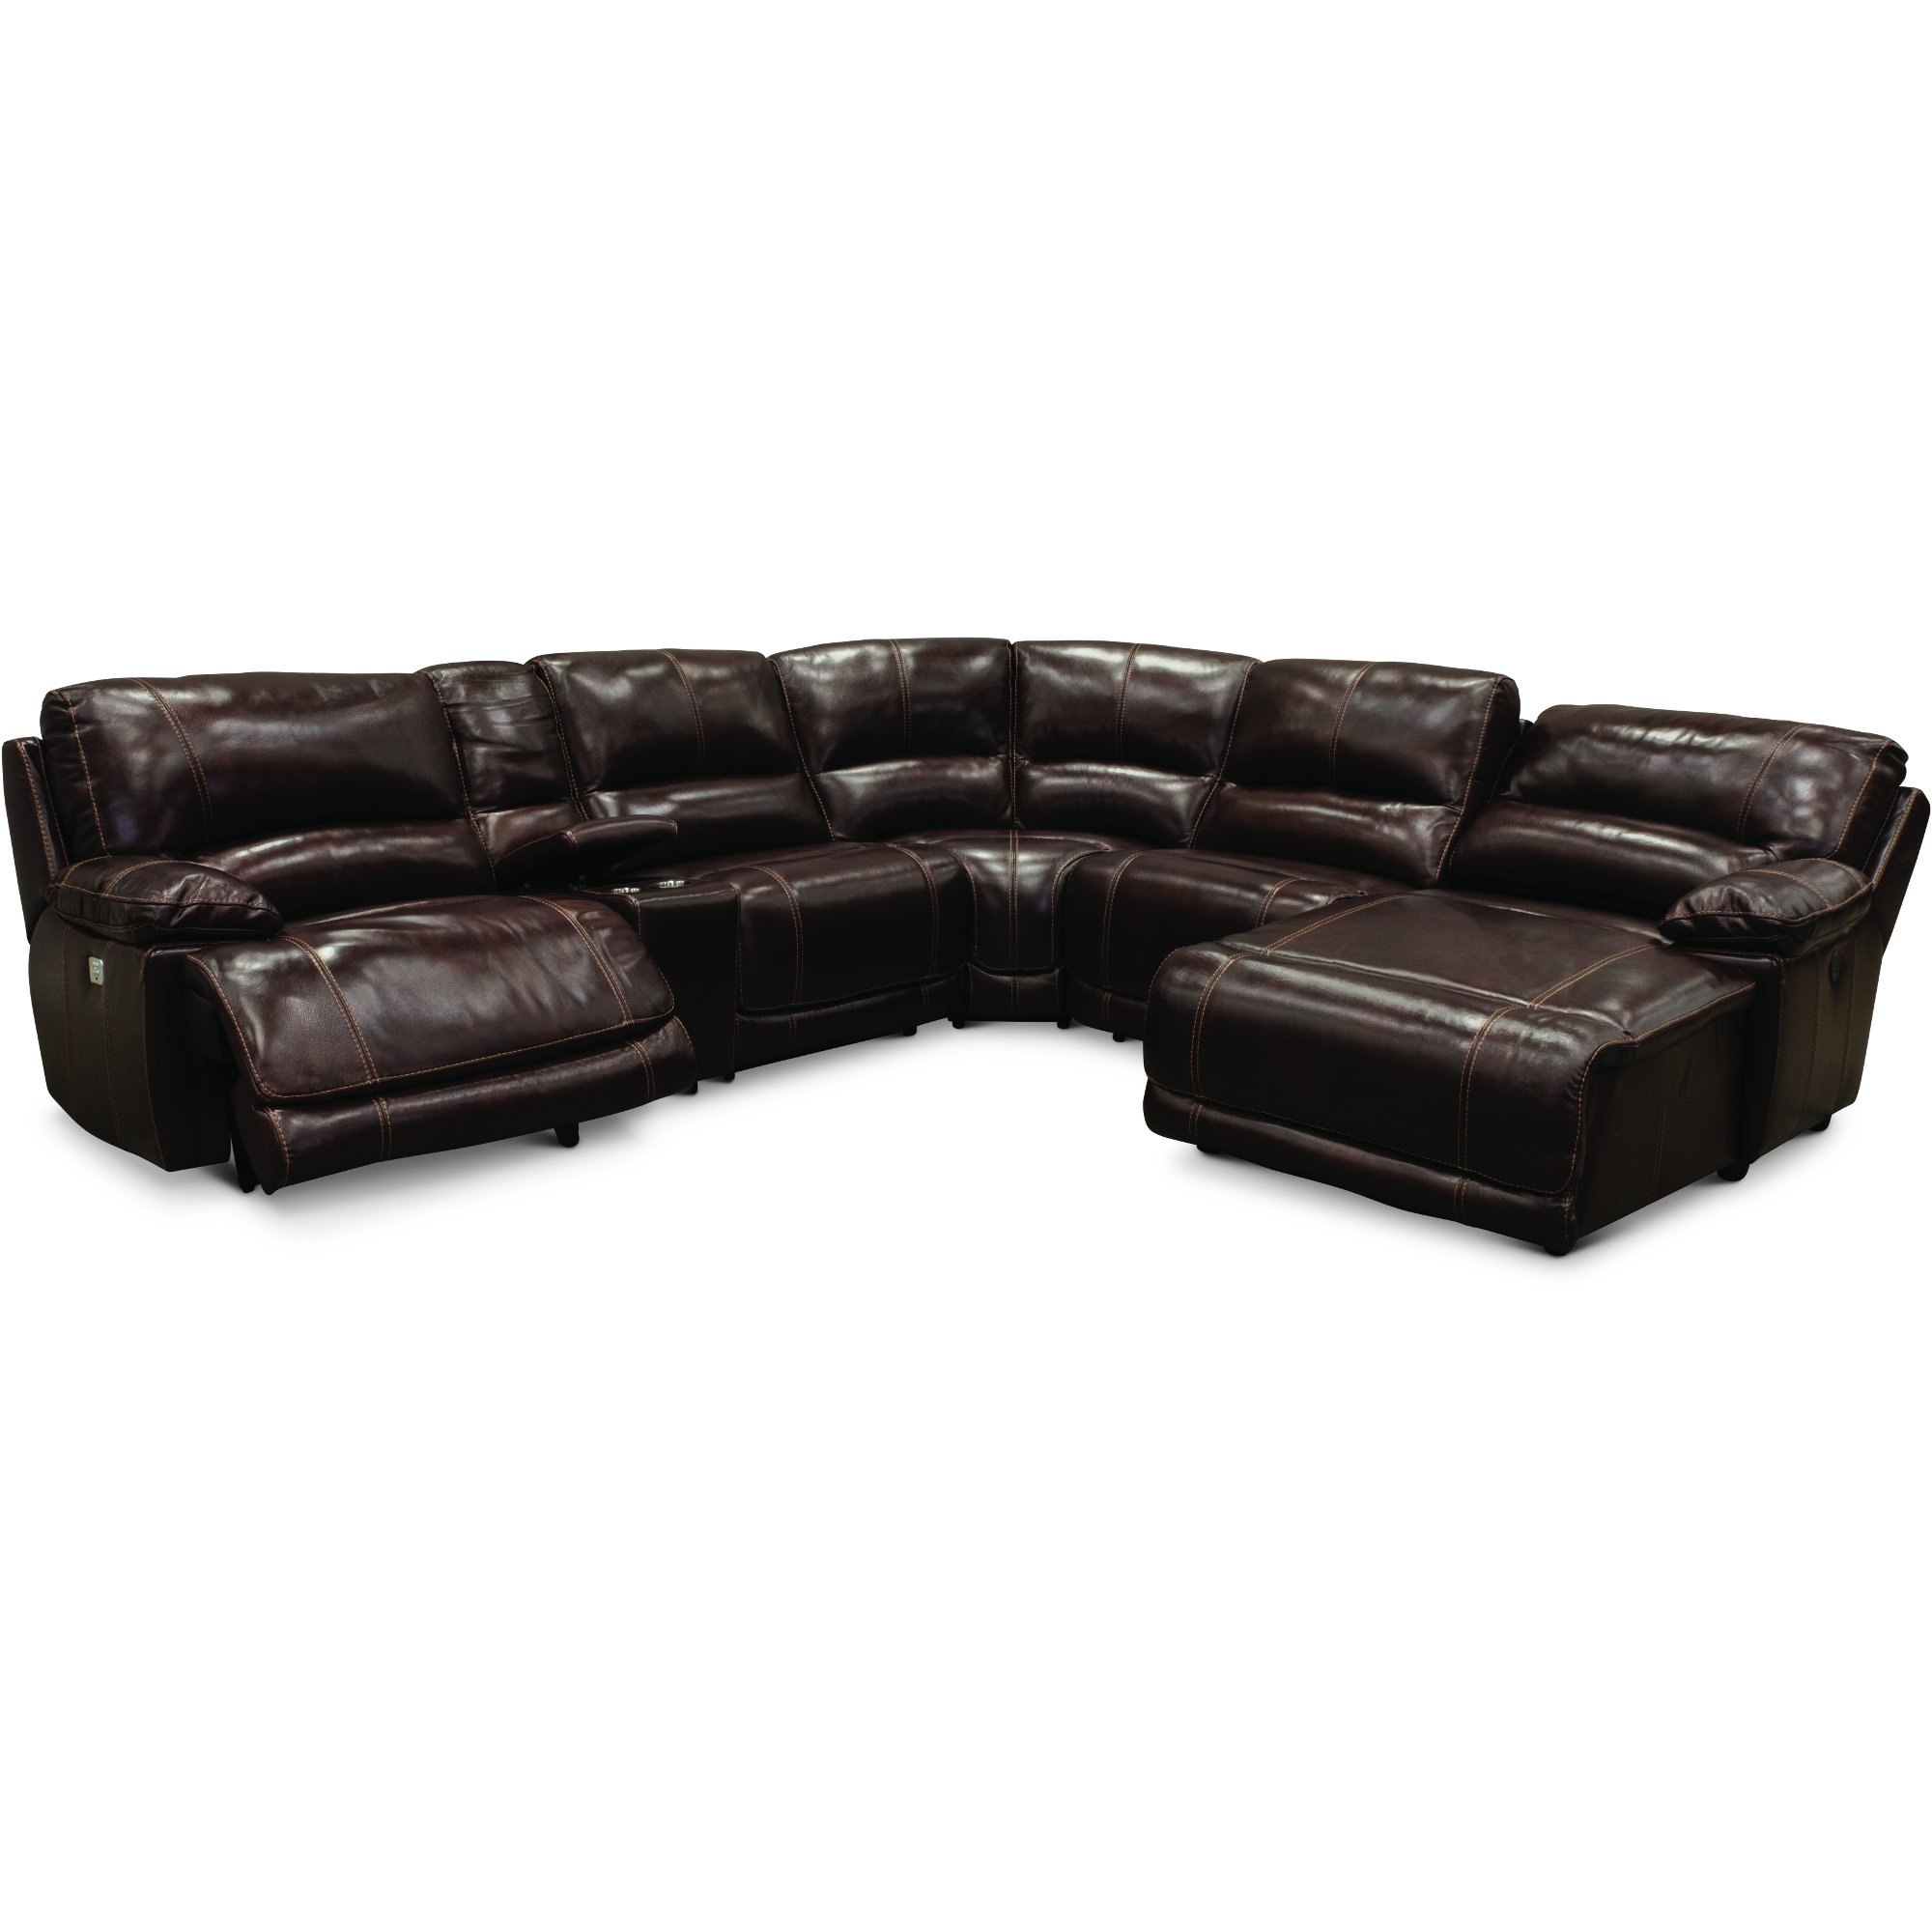 Burgundy 6 Piece Power Reclining Sectional Sofa – Brant | Rc Willey Pertaining To Jackson 6 Piece Power Reclining Sectionals (View 7 of 25)